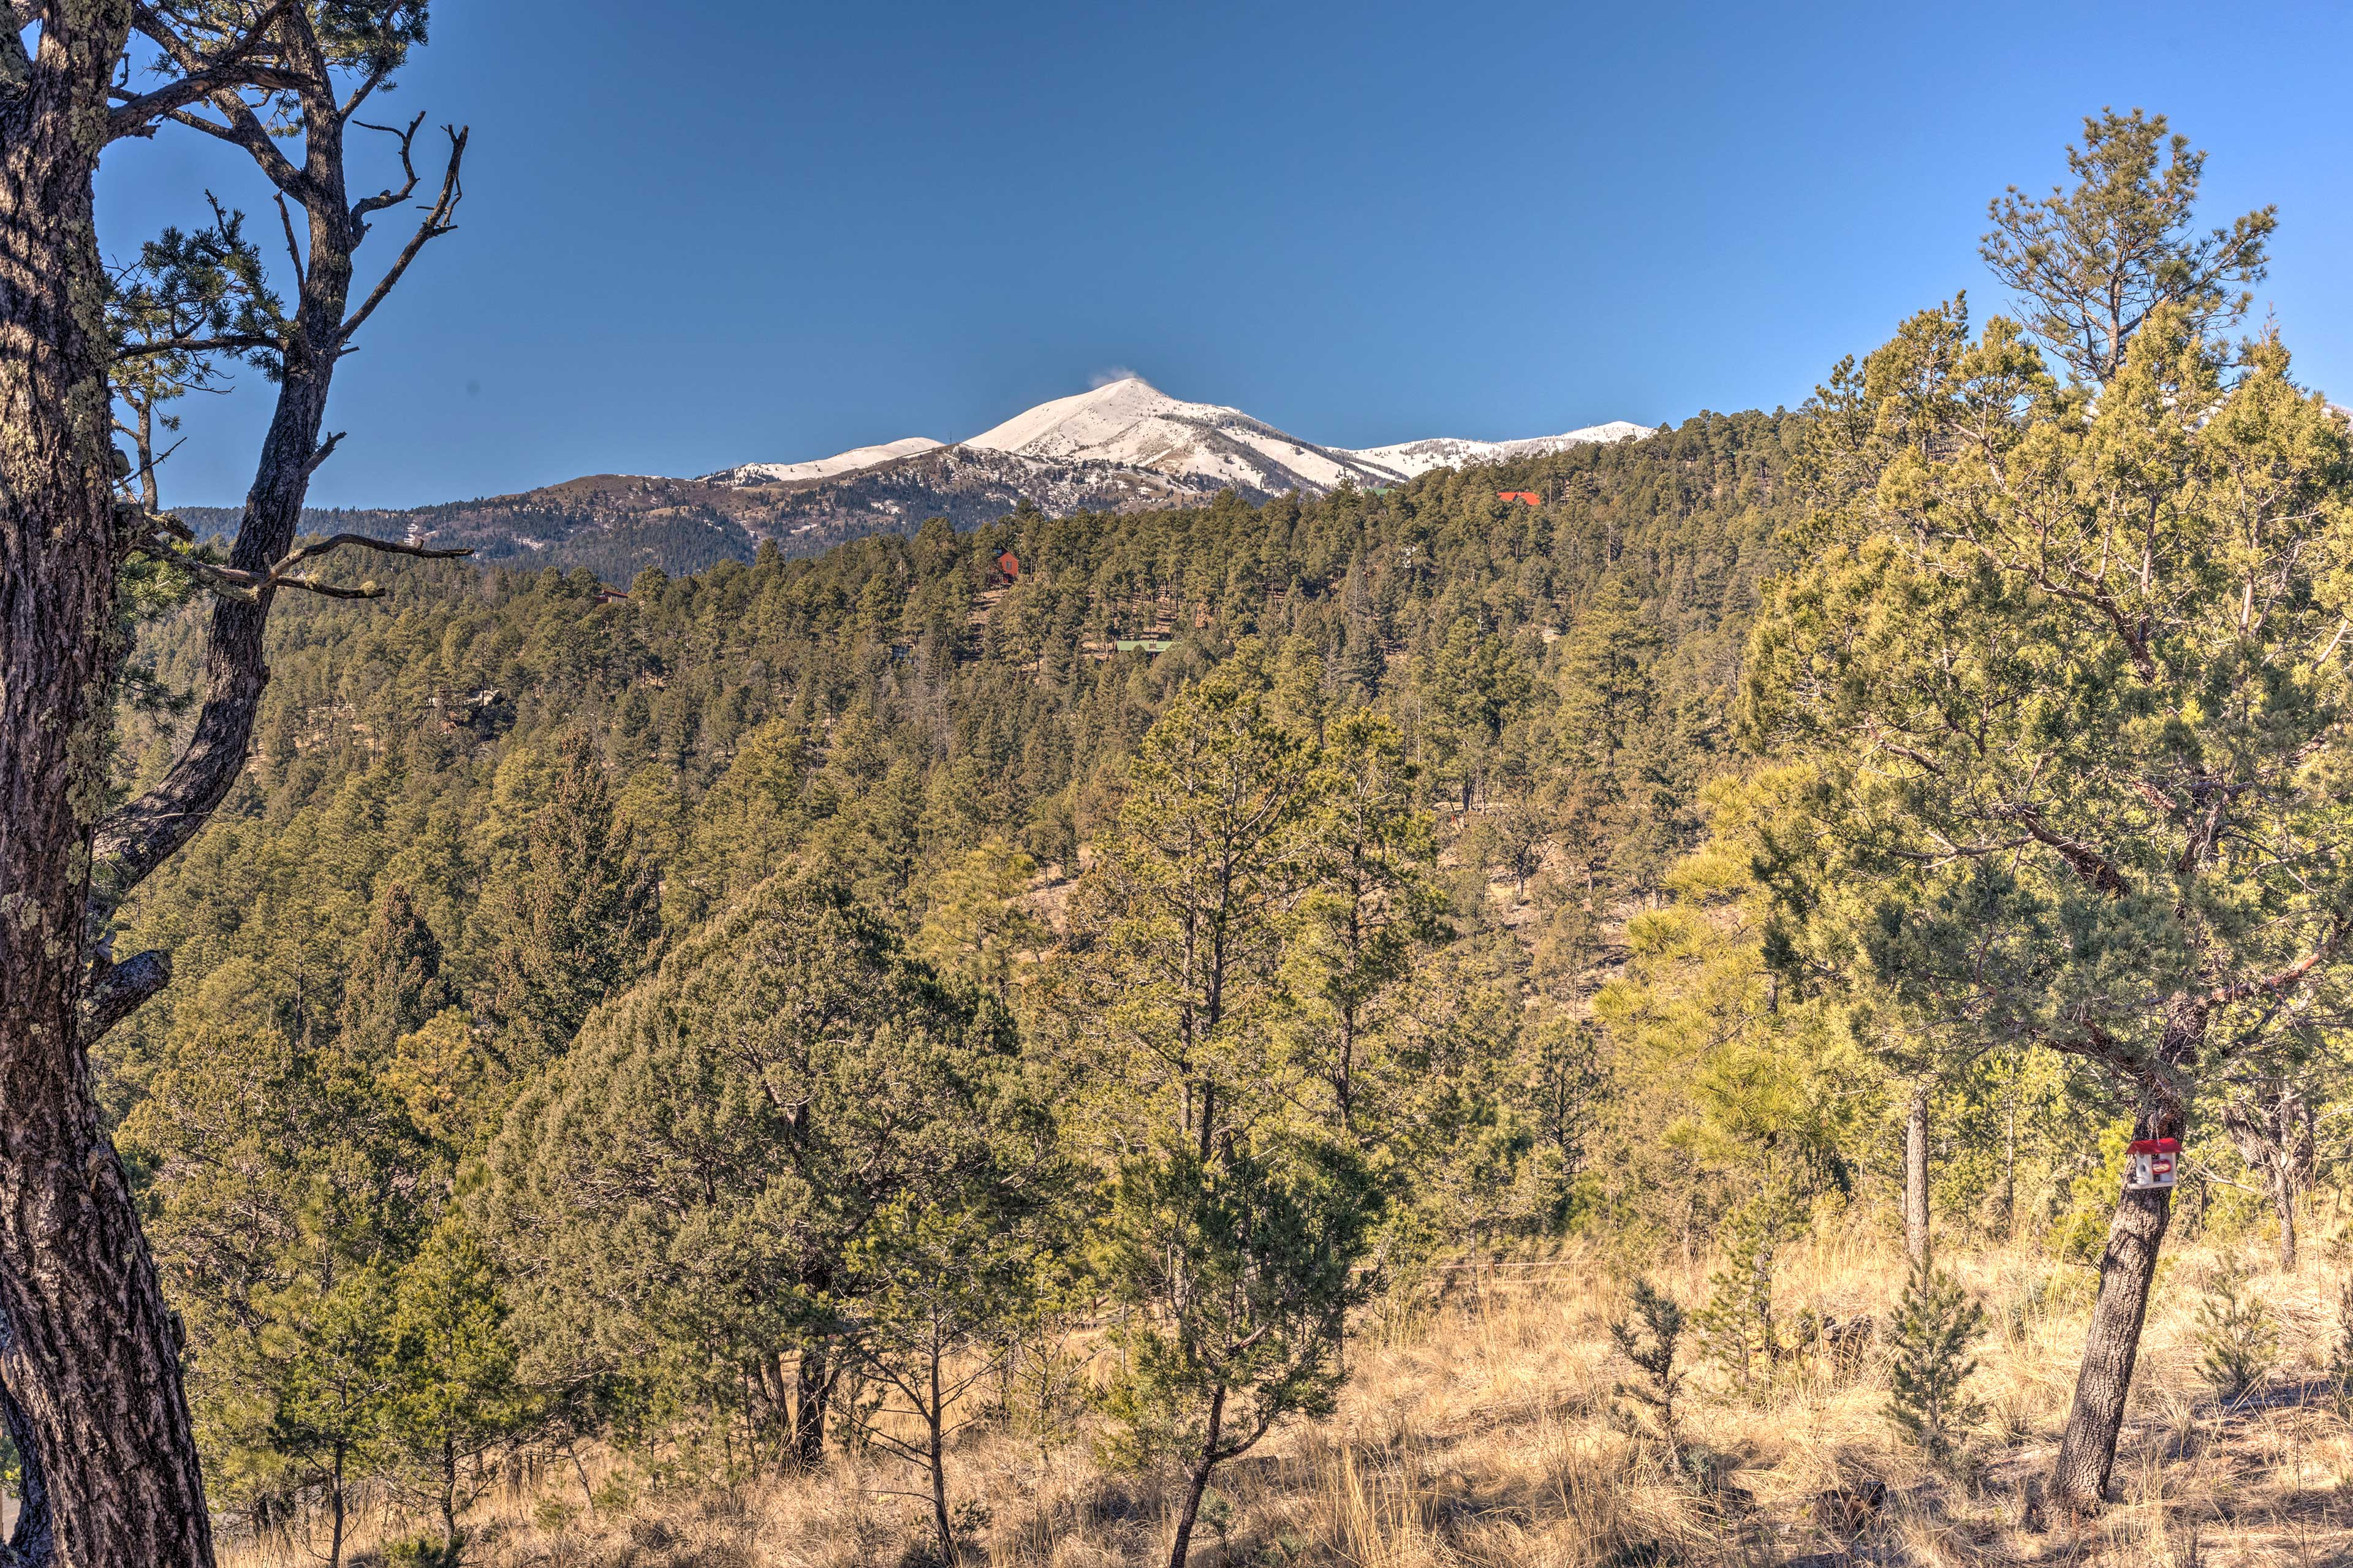 Your memorable vacation starts here in Ruidoso, NM. Book today!